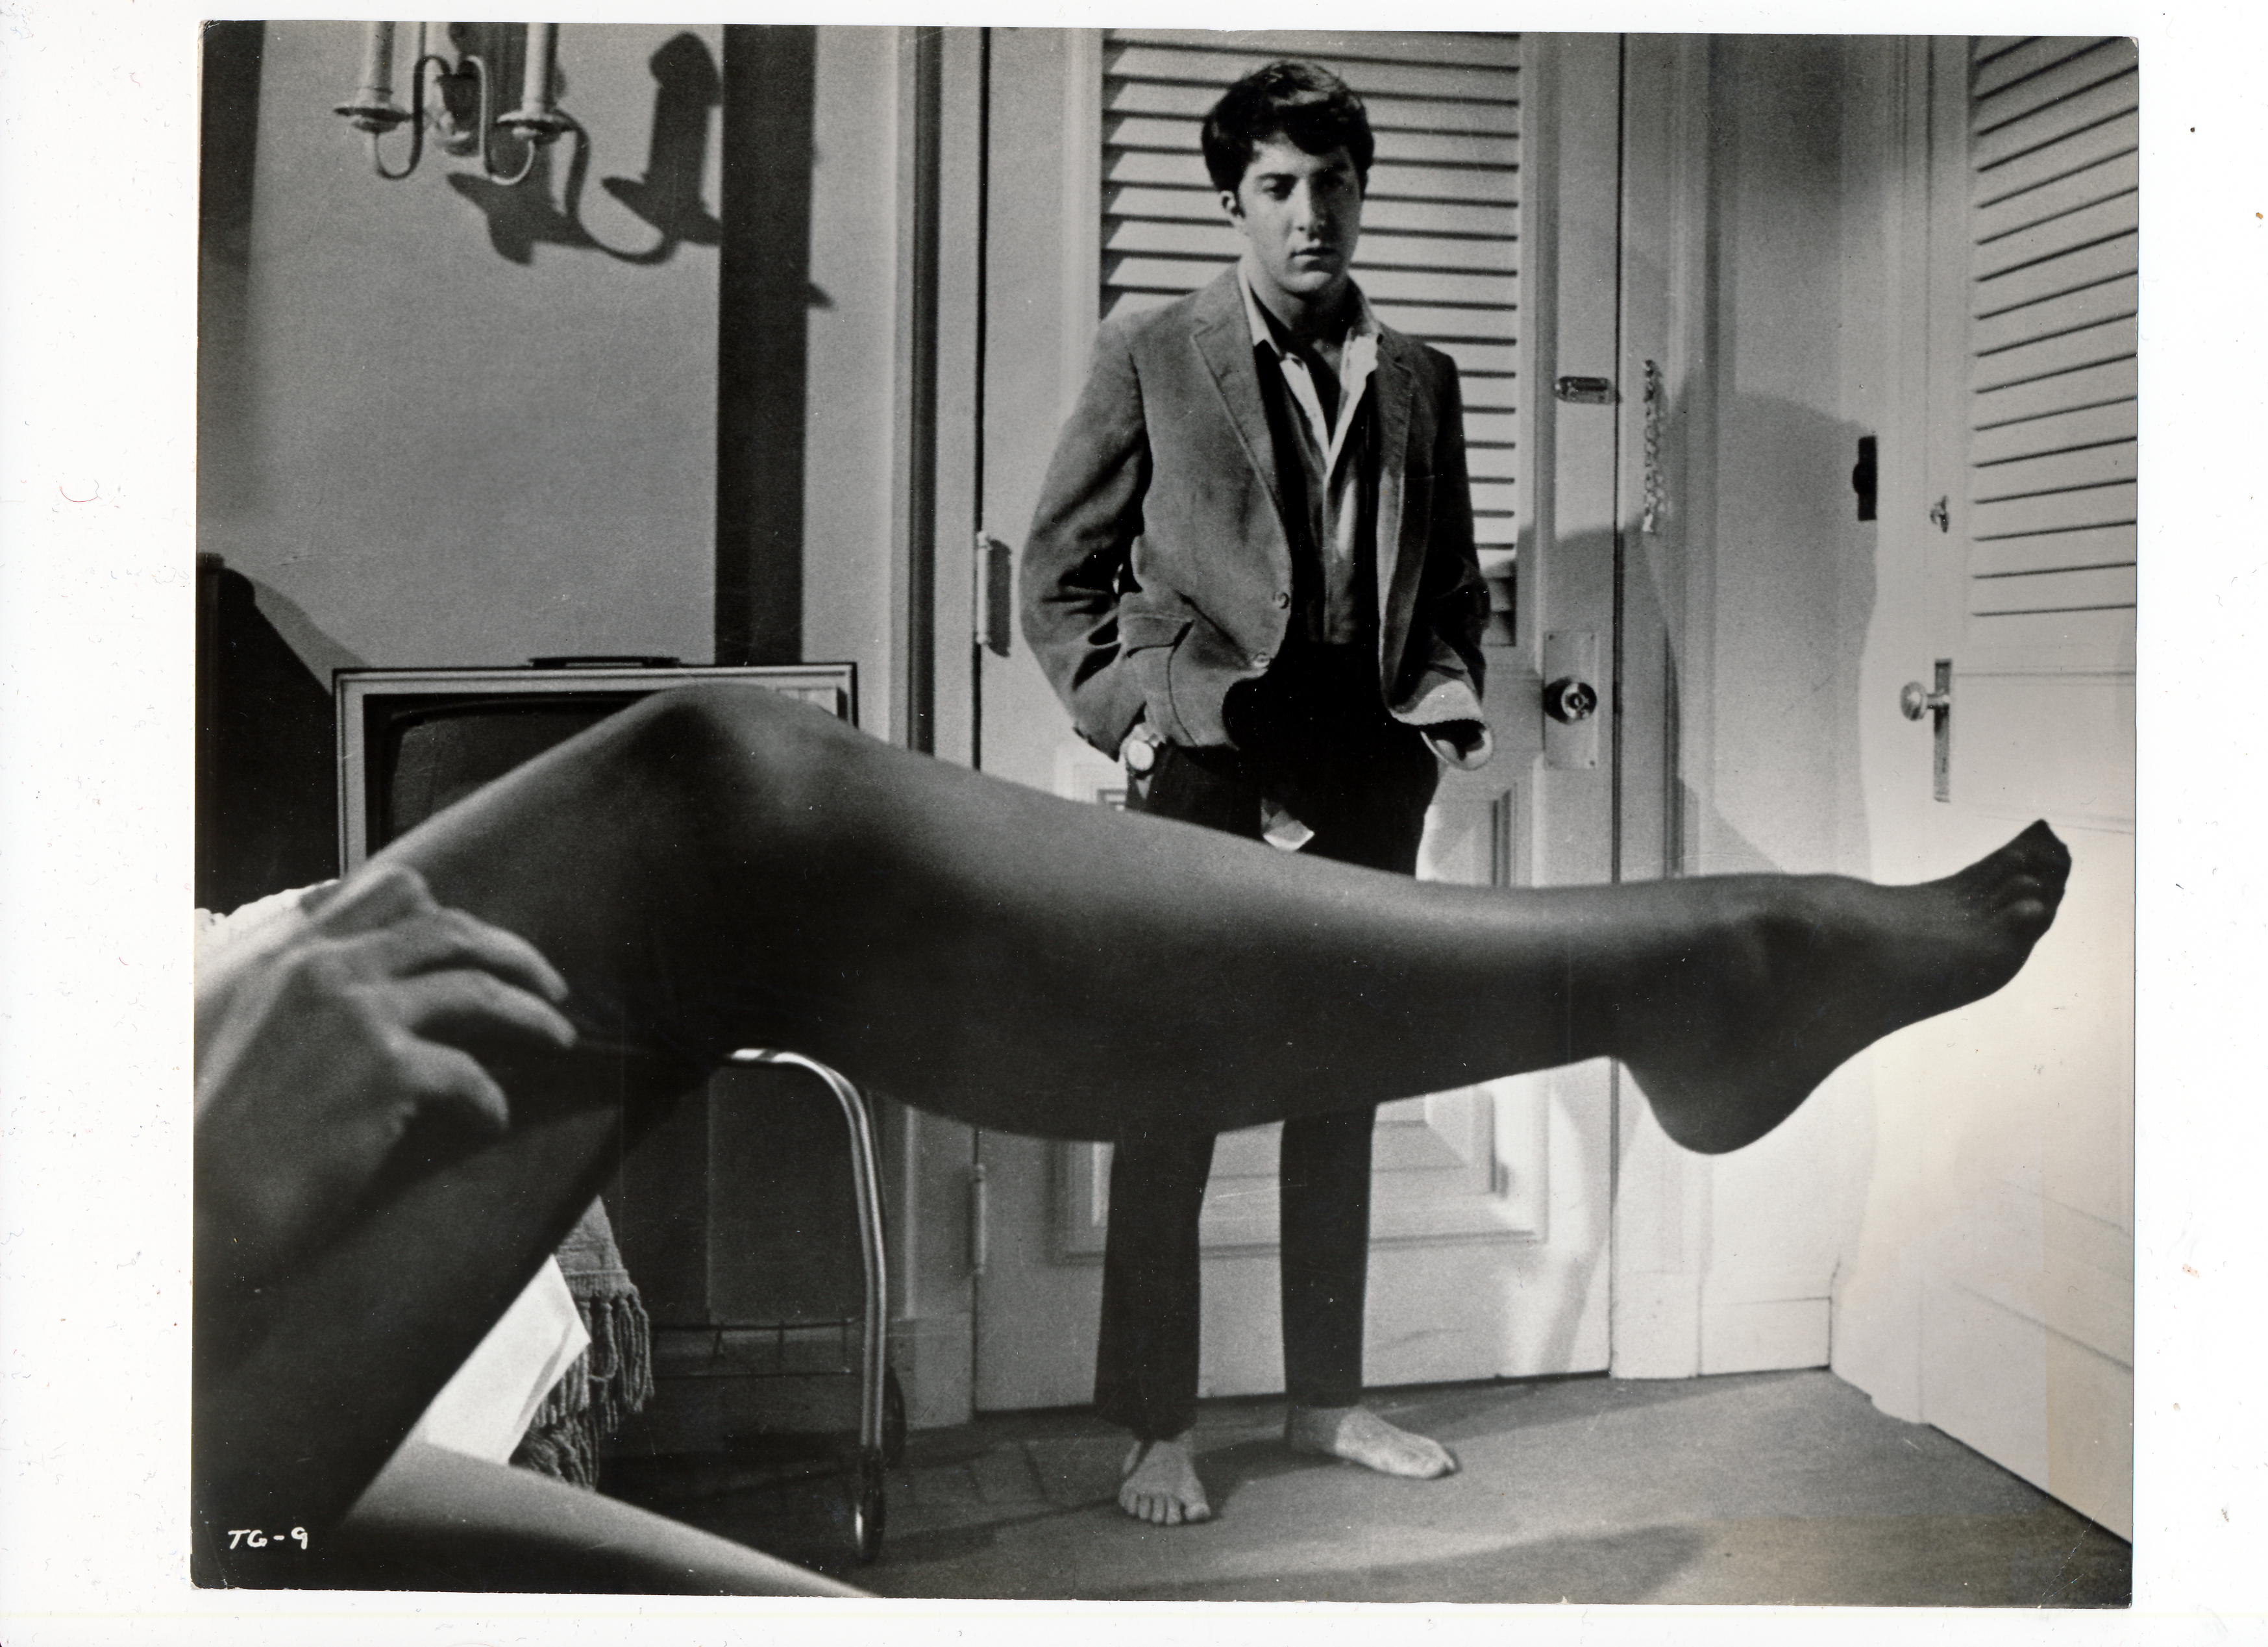 Pictured is a promostional black-and-white still from the 1967 Mike Nichols film The Graduate starraing Dustin Hoffman.